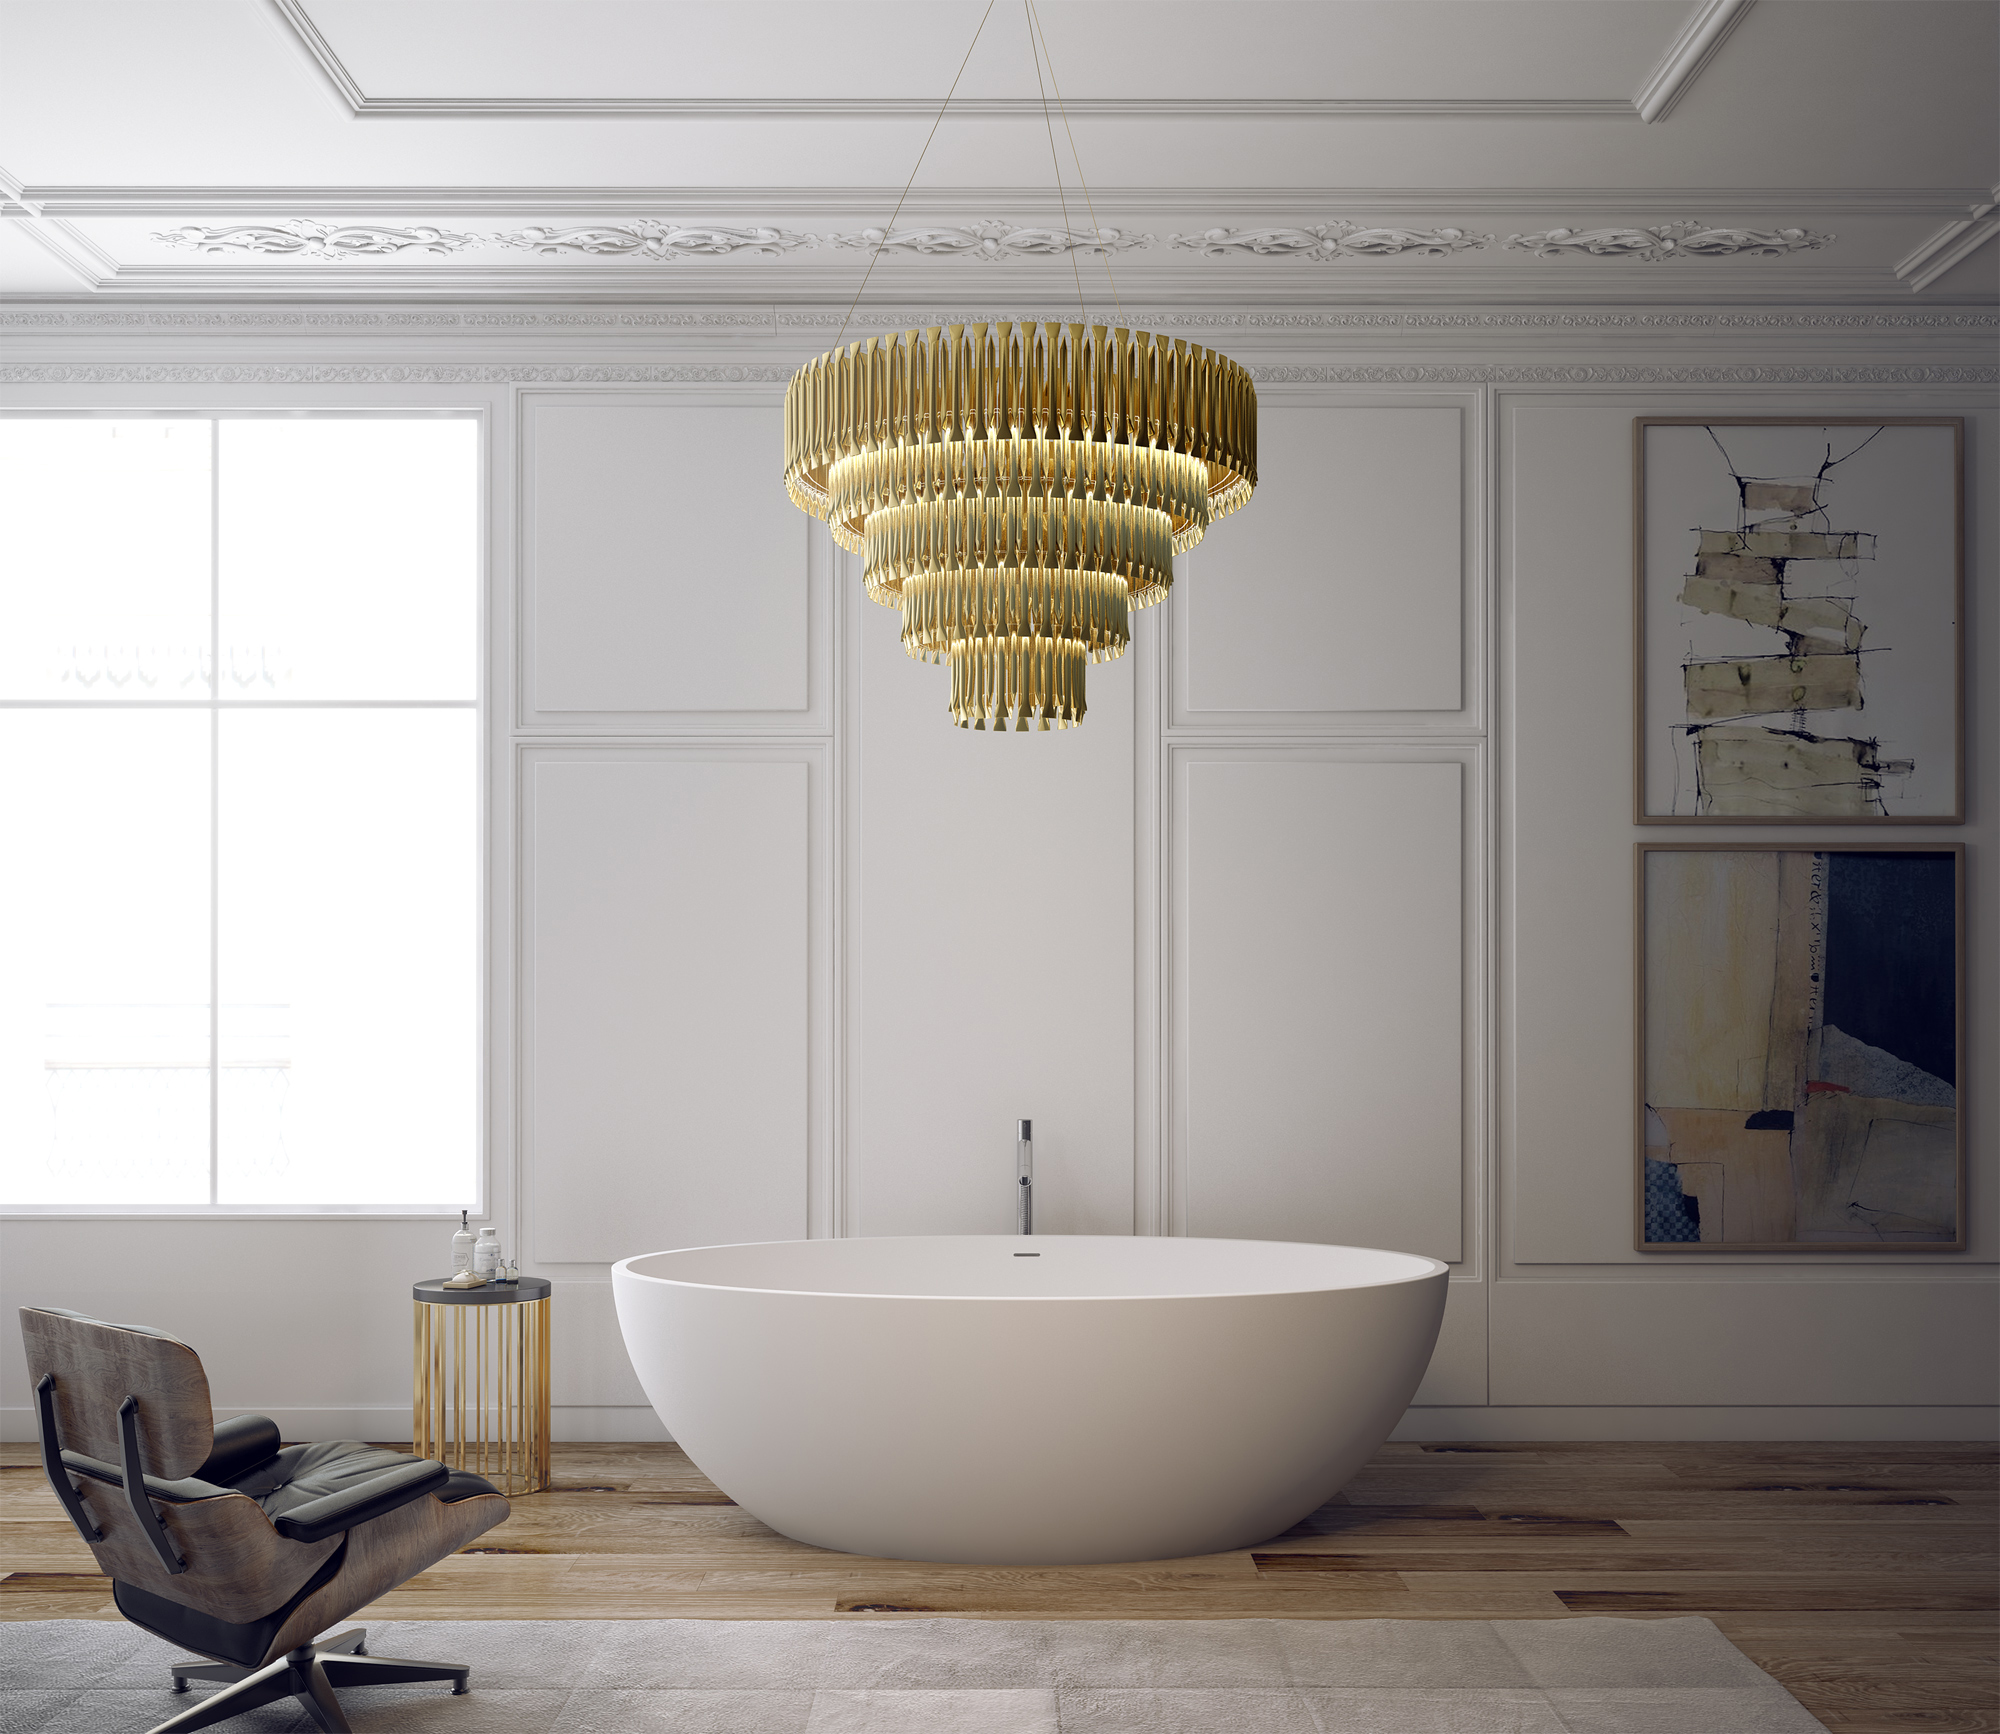 5 Bathroom Lighting Ideas You need to Use in 2017 dubai luxury guide Suggestions for Dubai Luxury Guide 5 Bathroom Lighting Ideas You need to Use in 2017 dubai luxury guide Suggestions for Dubai Luxury Guide 5 Bathroom Lighting Ideas You need to Use in 2017